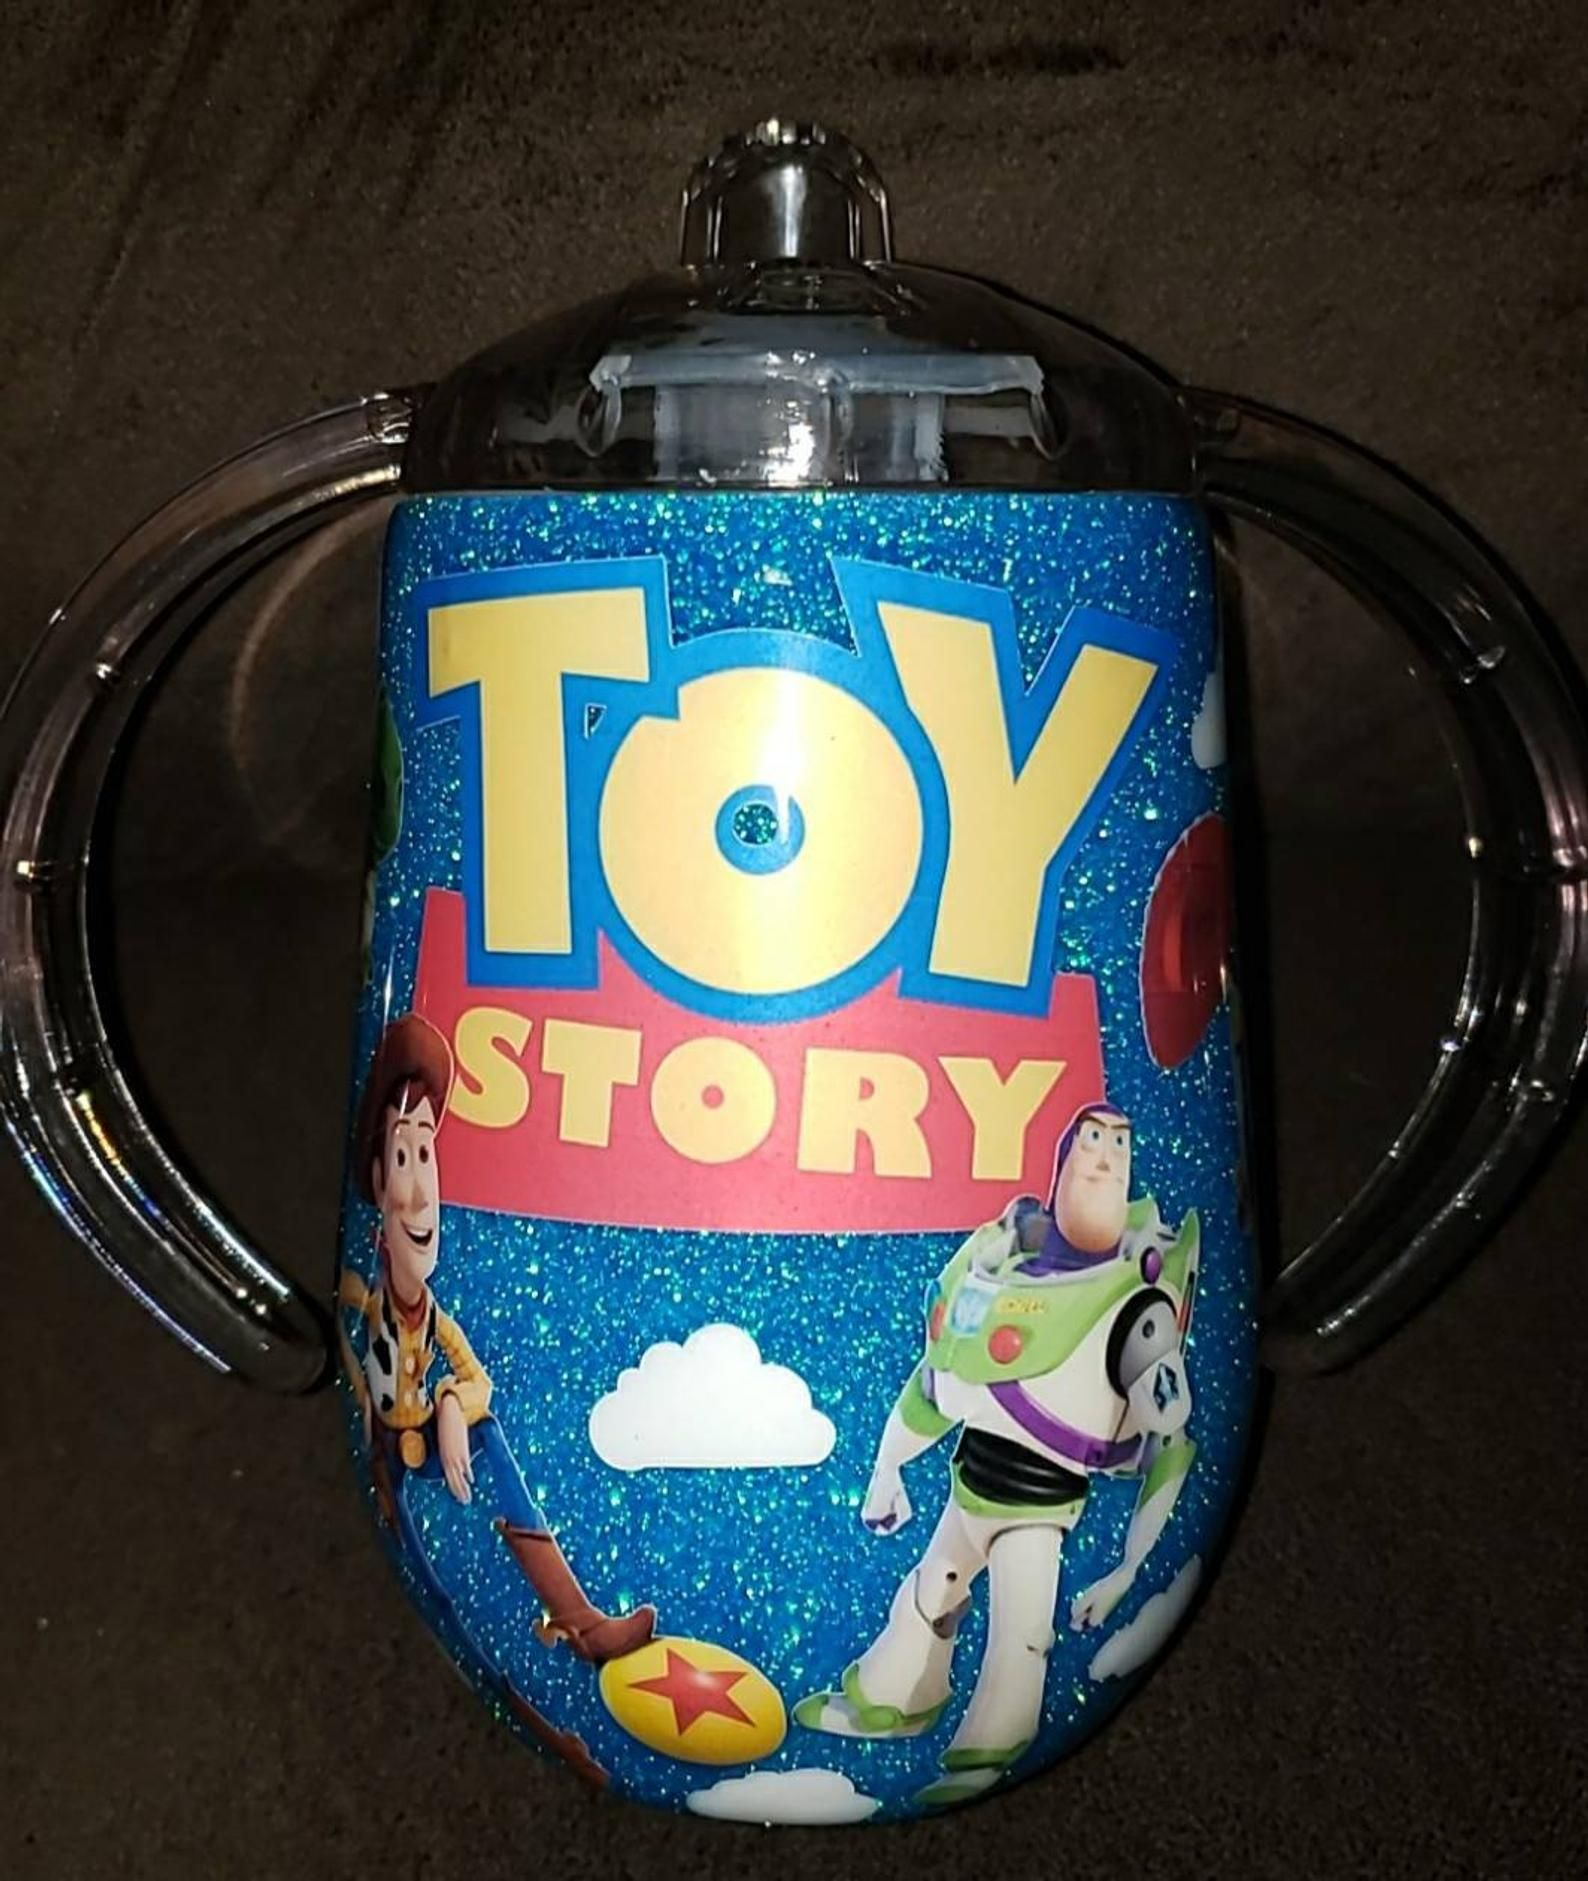 Toy Story Sippy Cup Etsy In 2020 Sippy Cup Personalized Starbucks Cup Custom Tumbler Cups